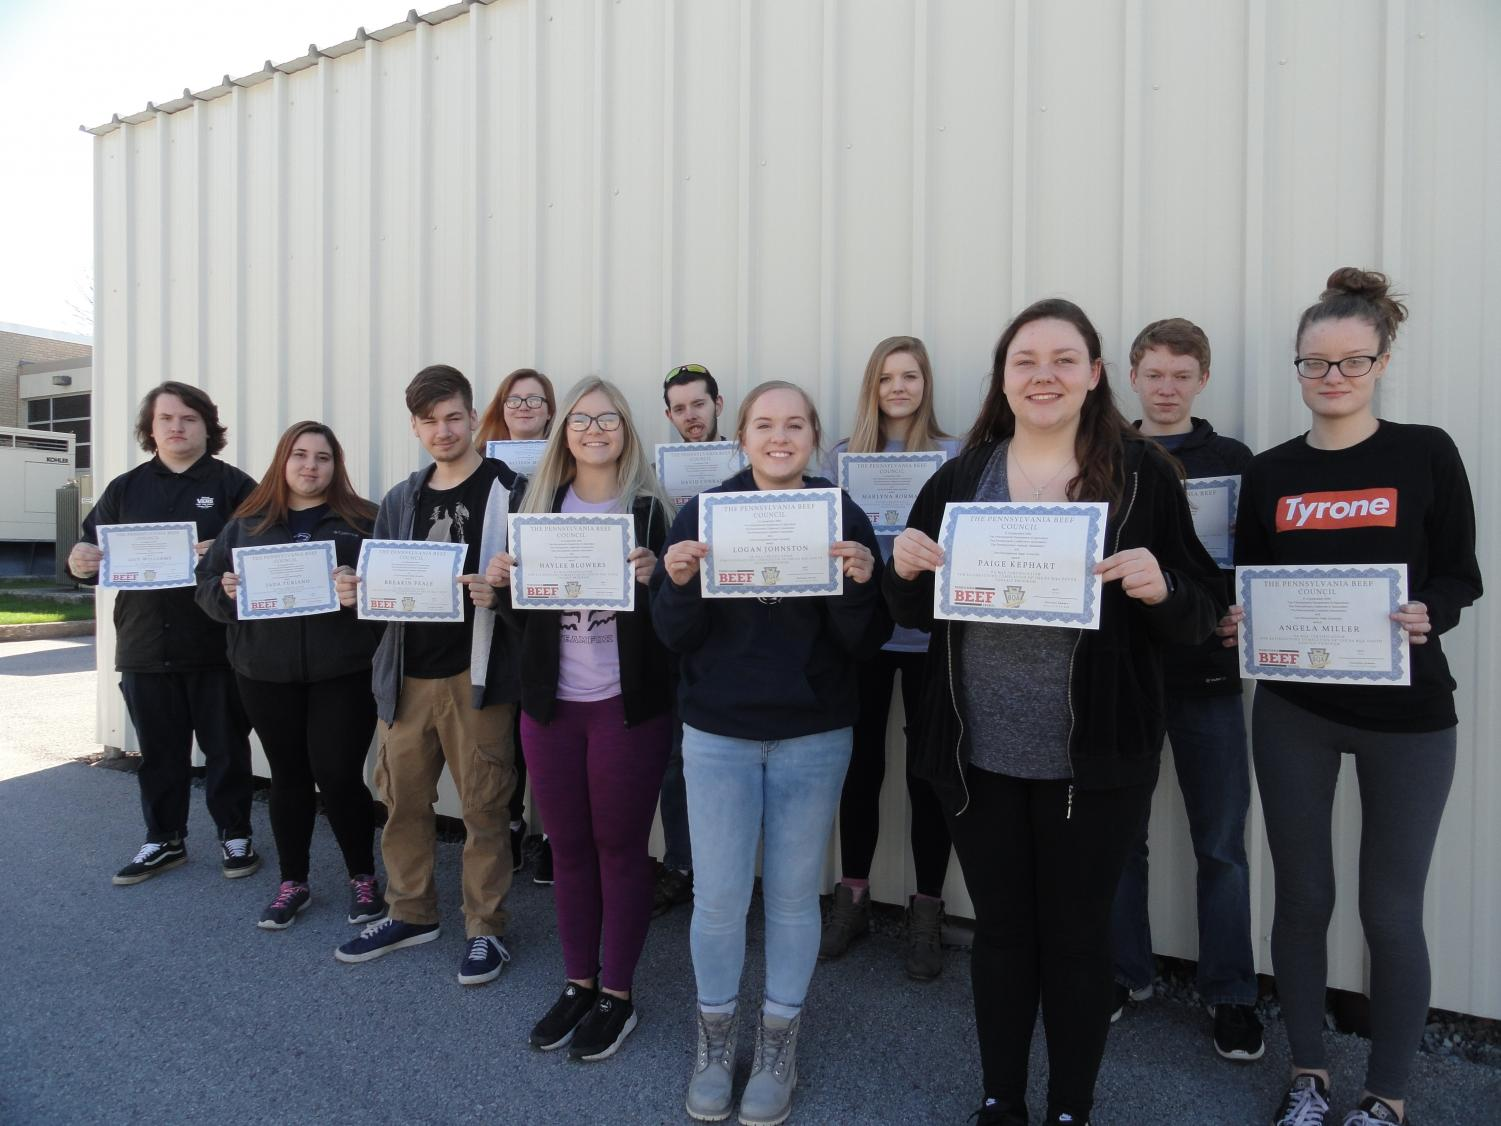 left to right – Guy Williams, Jada Turiano, Breckin Peale, Haylee Blowers, Logan Johnston, Paige Kephart, and Angela Miller; back row left to right – Allison Miller, David Conard, Marlyna Borman, and Zach Neff (not pictured: Kassy Kustenbauder)